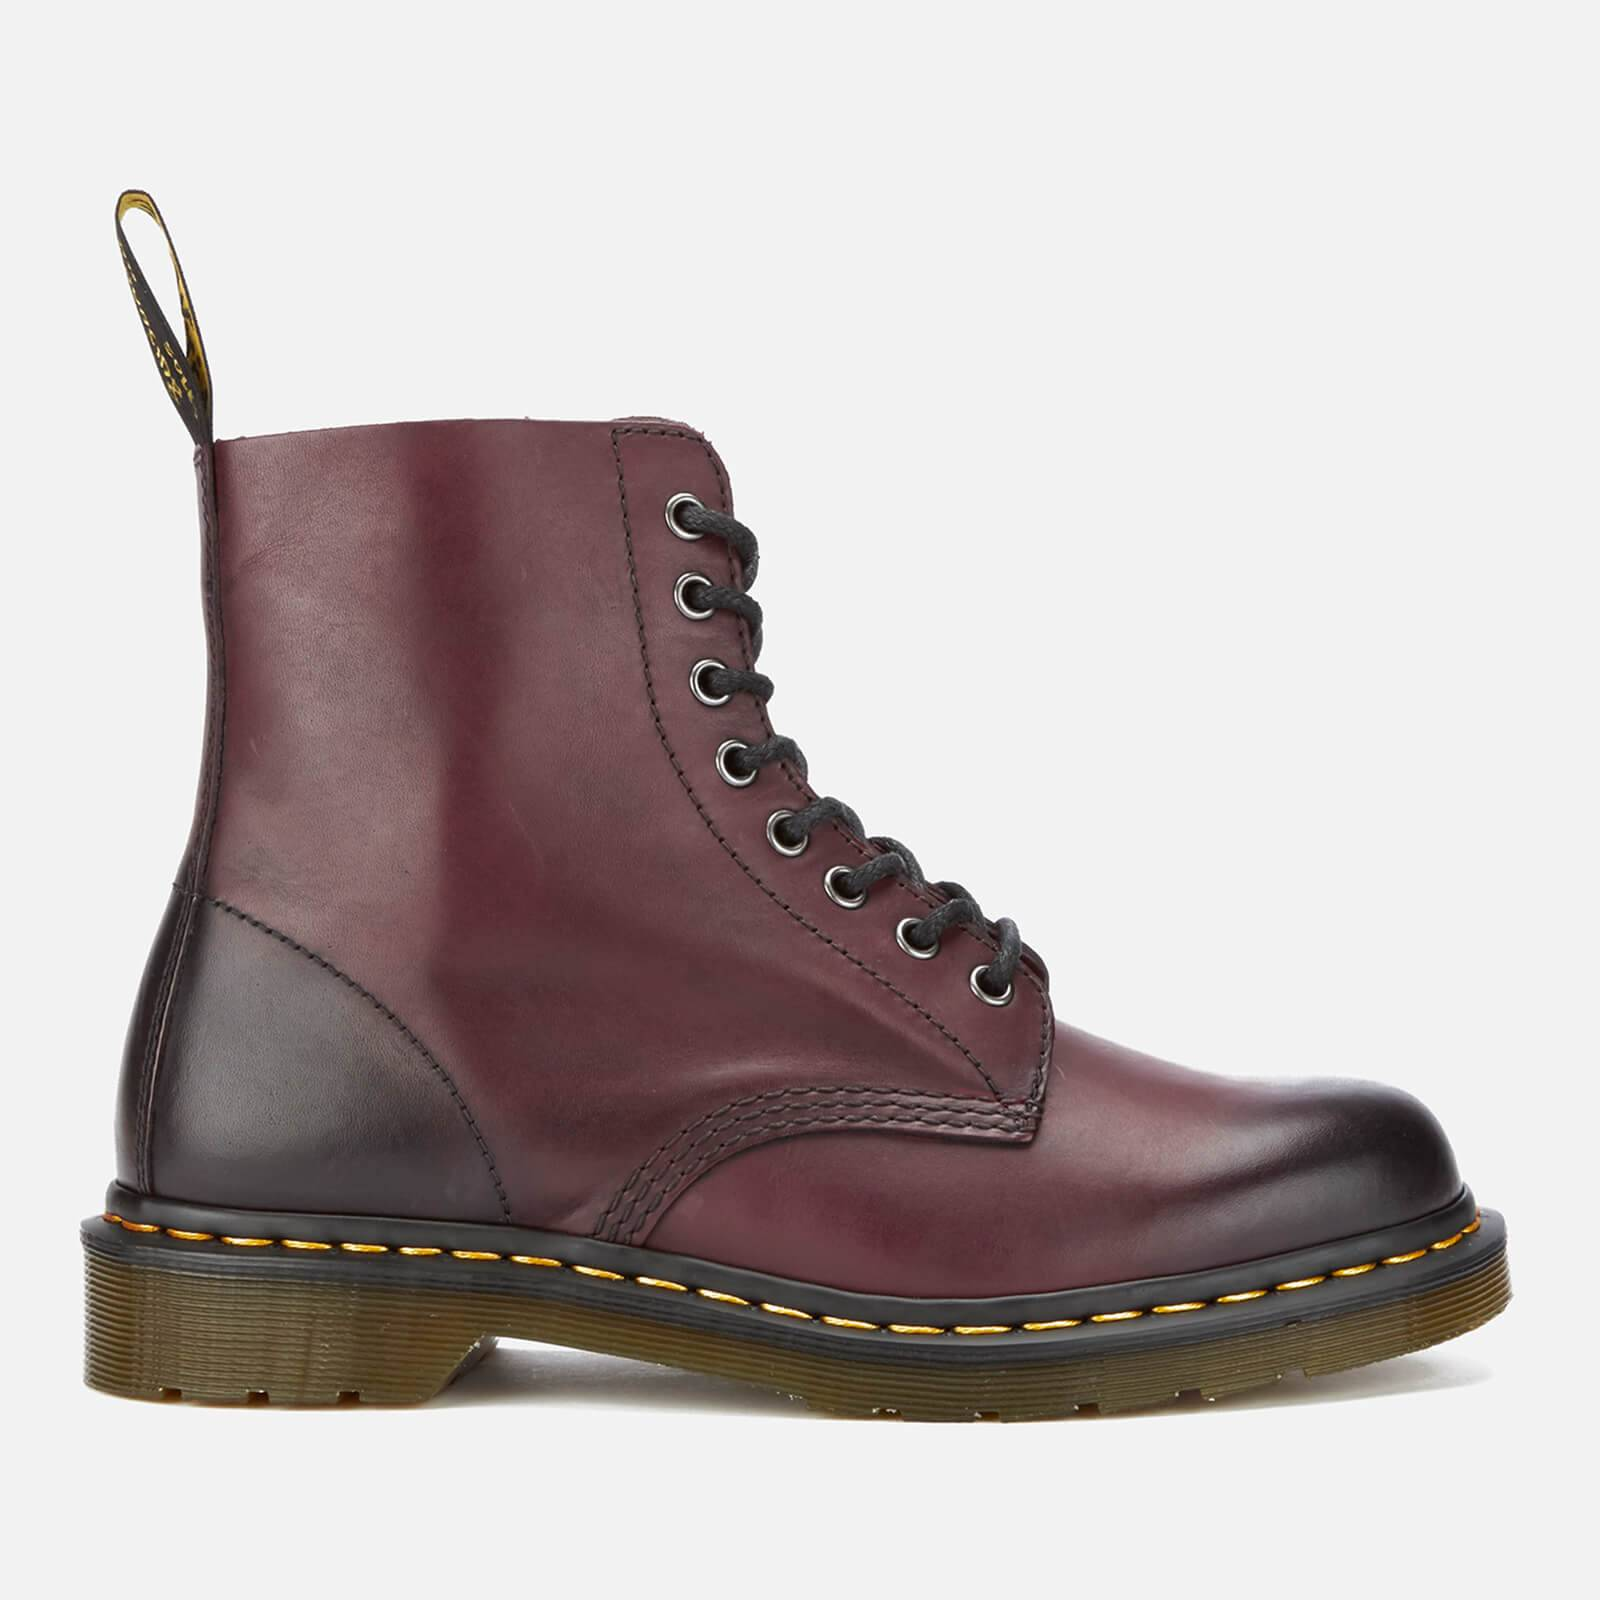 Dr. Martens Men's 1460 Pascal Antique Temperley Leather 8-Eye Boots - Cherry Red - UK 8 - Burgundy